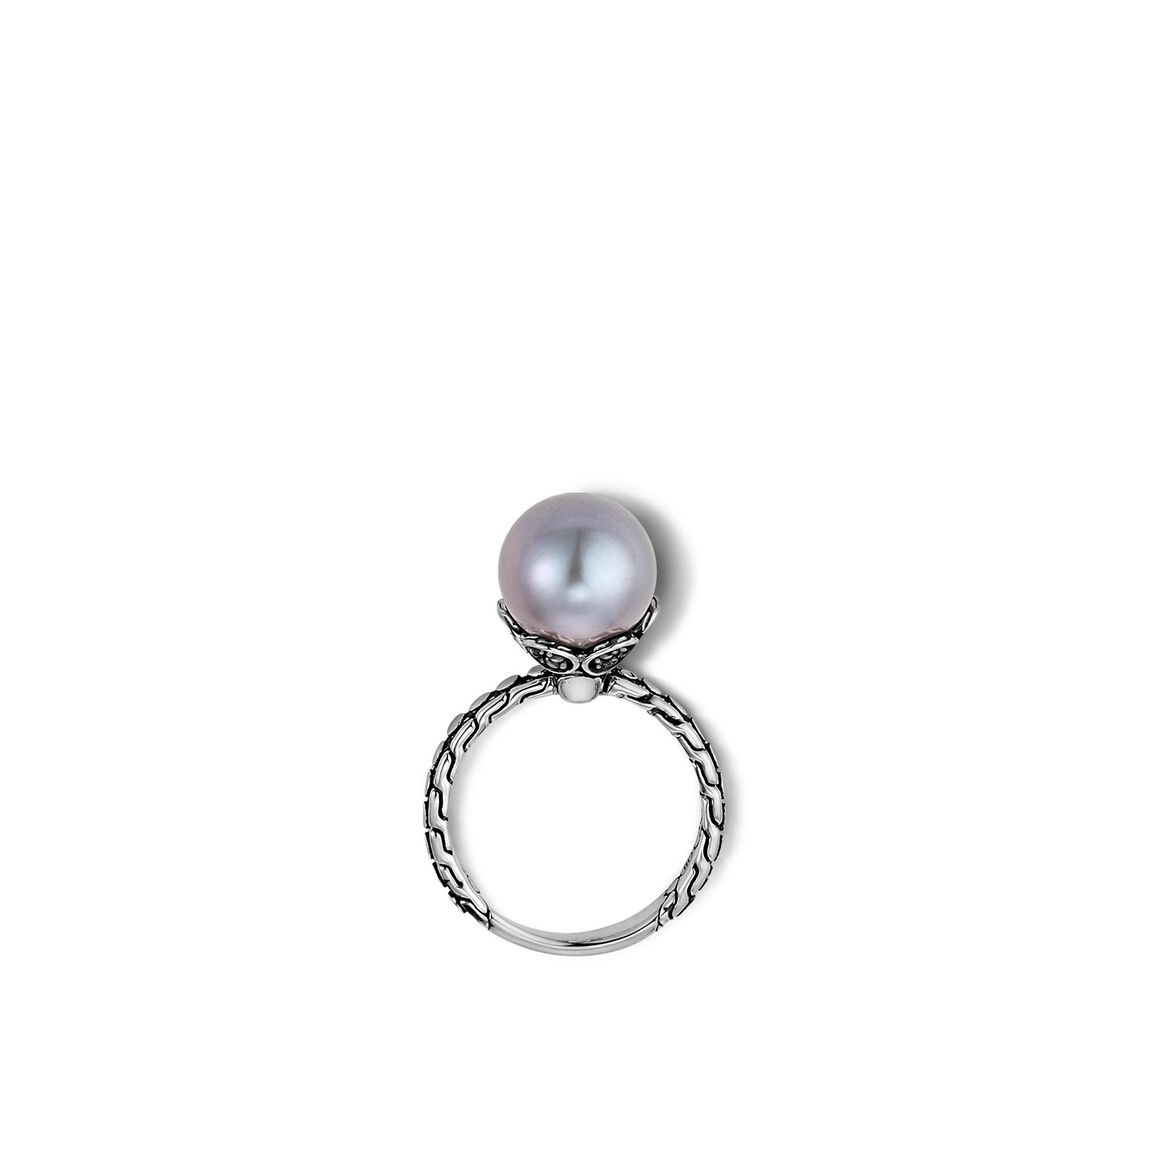 Dot Charm Ring in Silver with 10MM Pearl and Gemstone